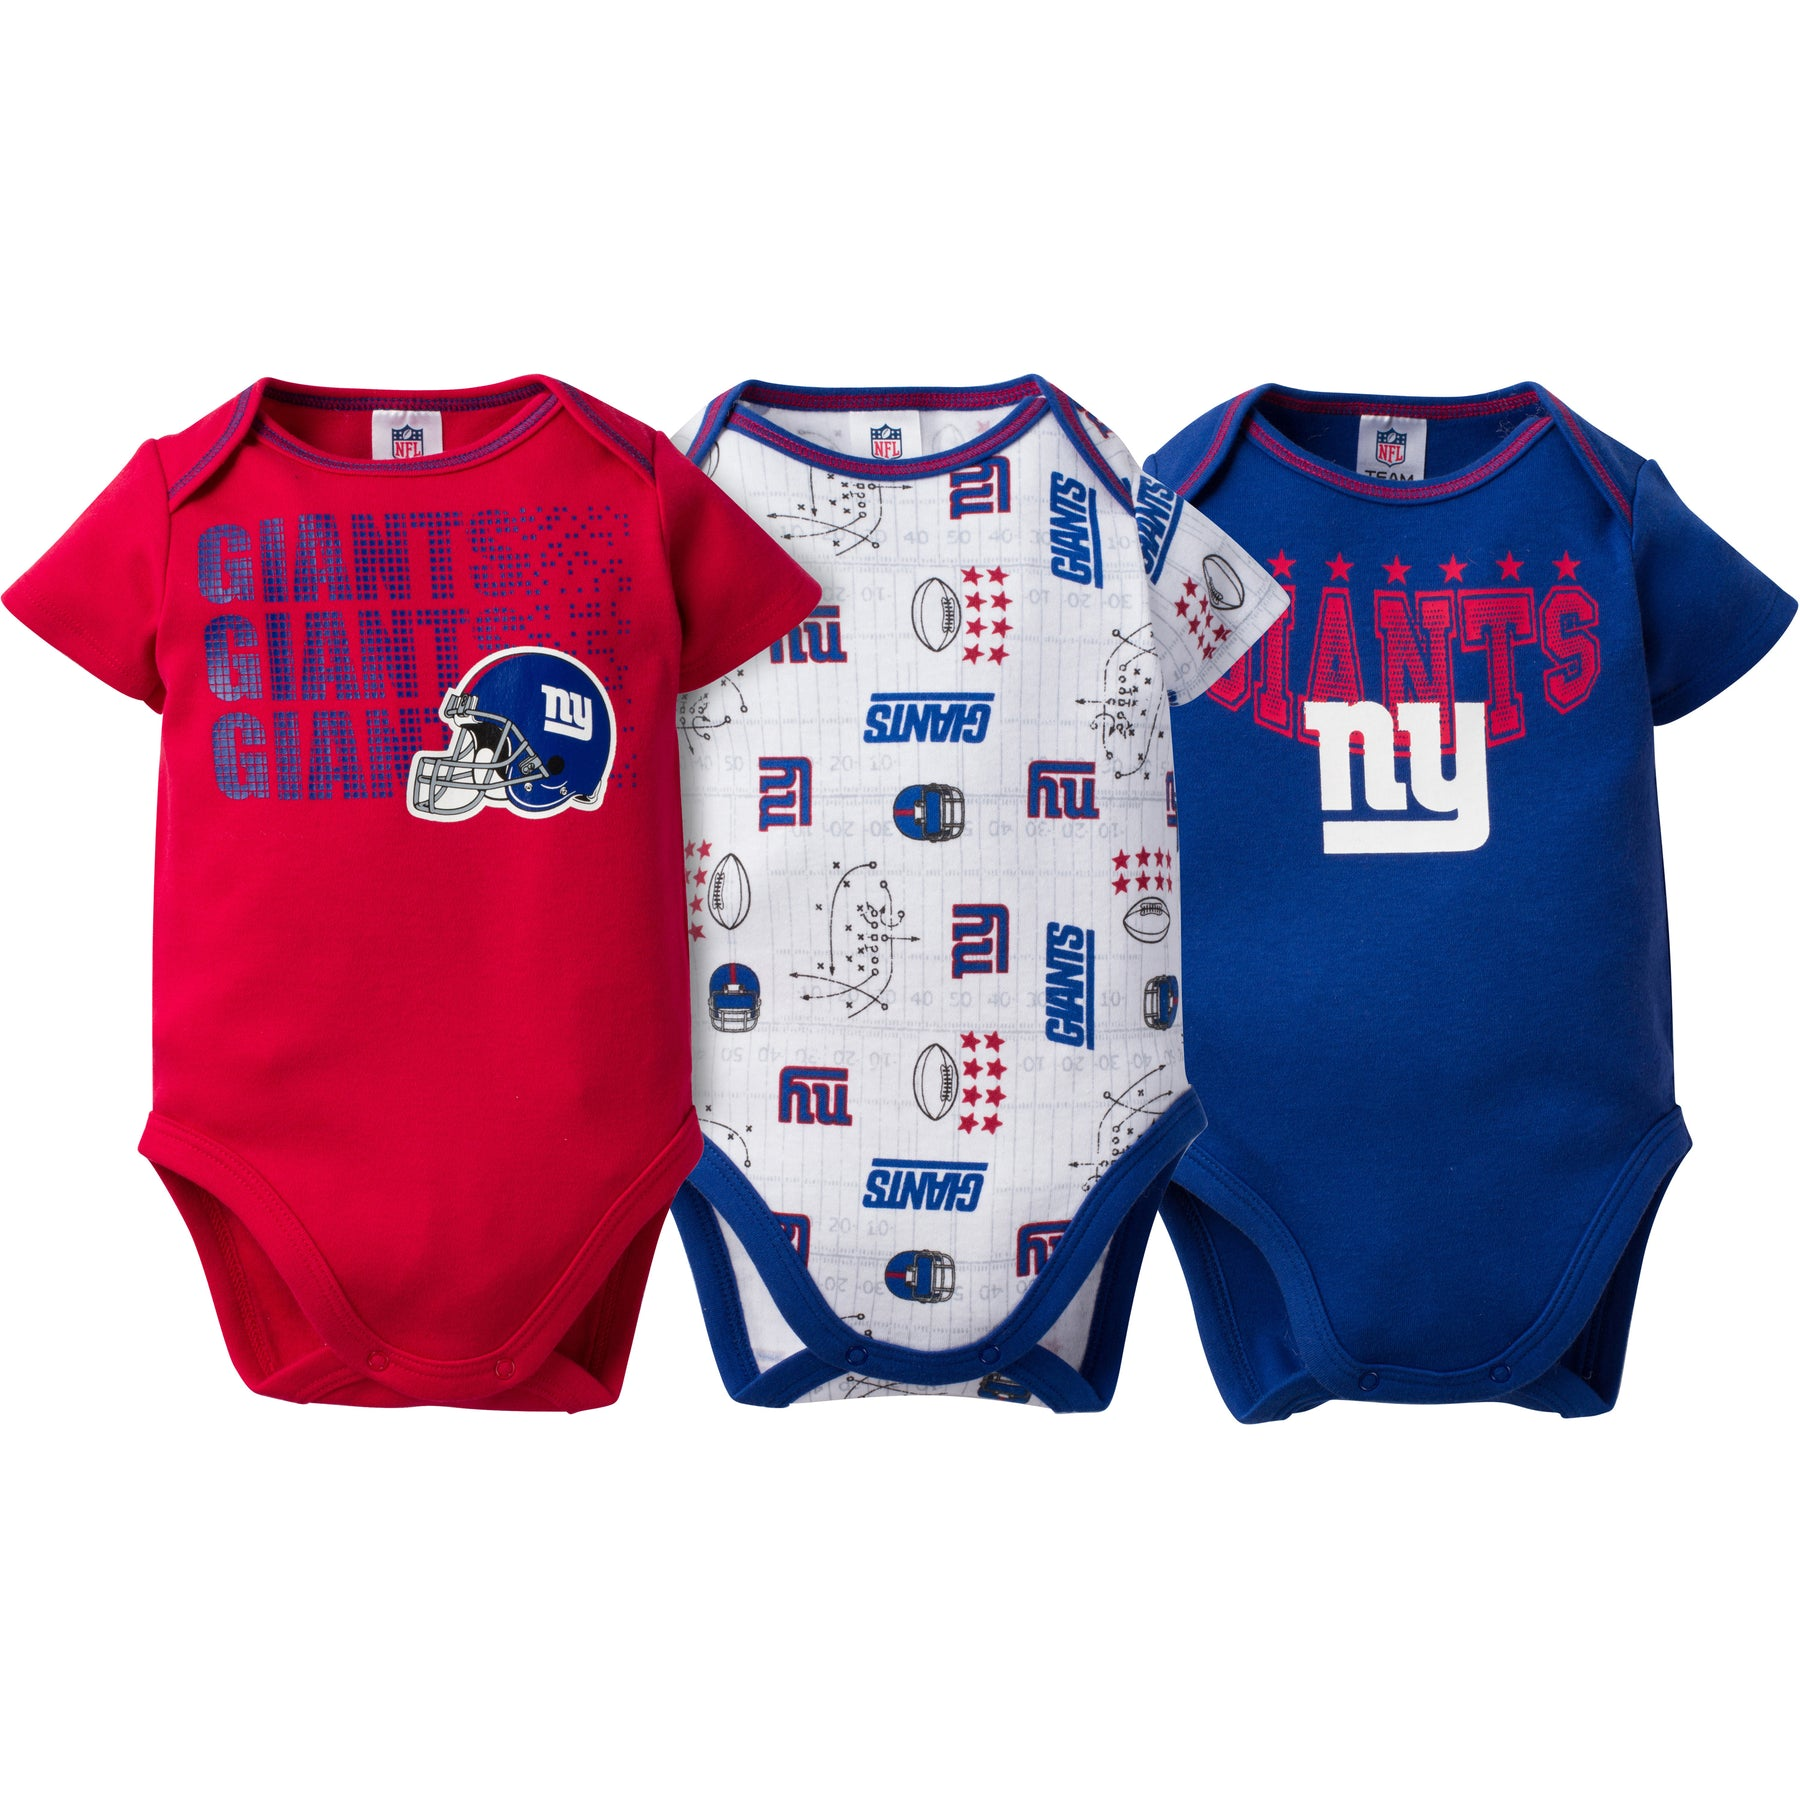 NFL Infant Clothing – New York Giants Baby Apparel – babyfans